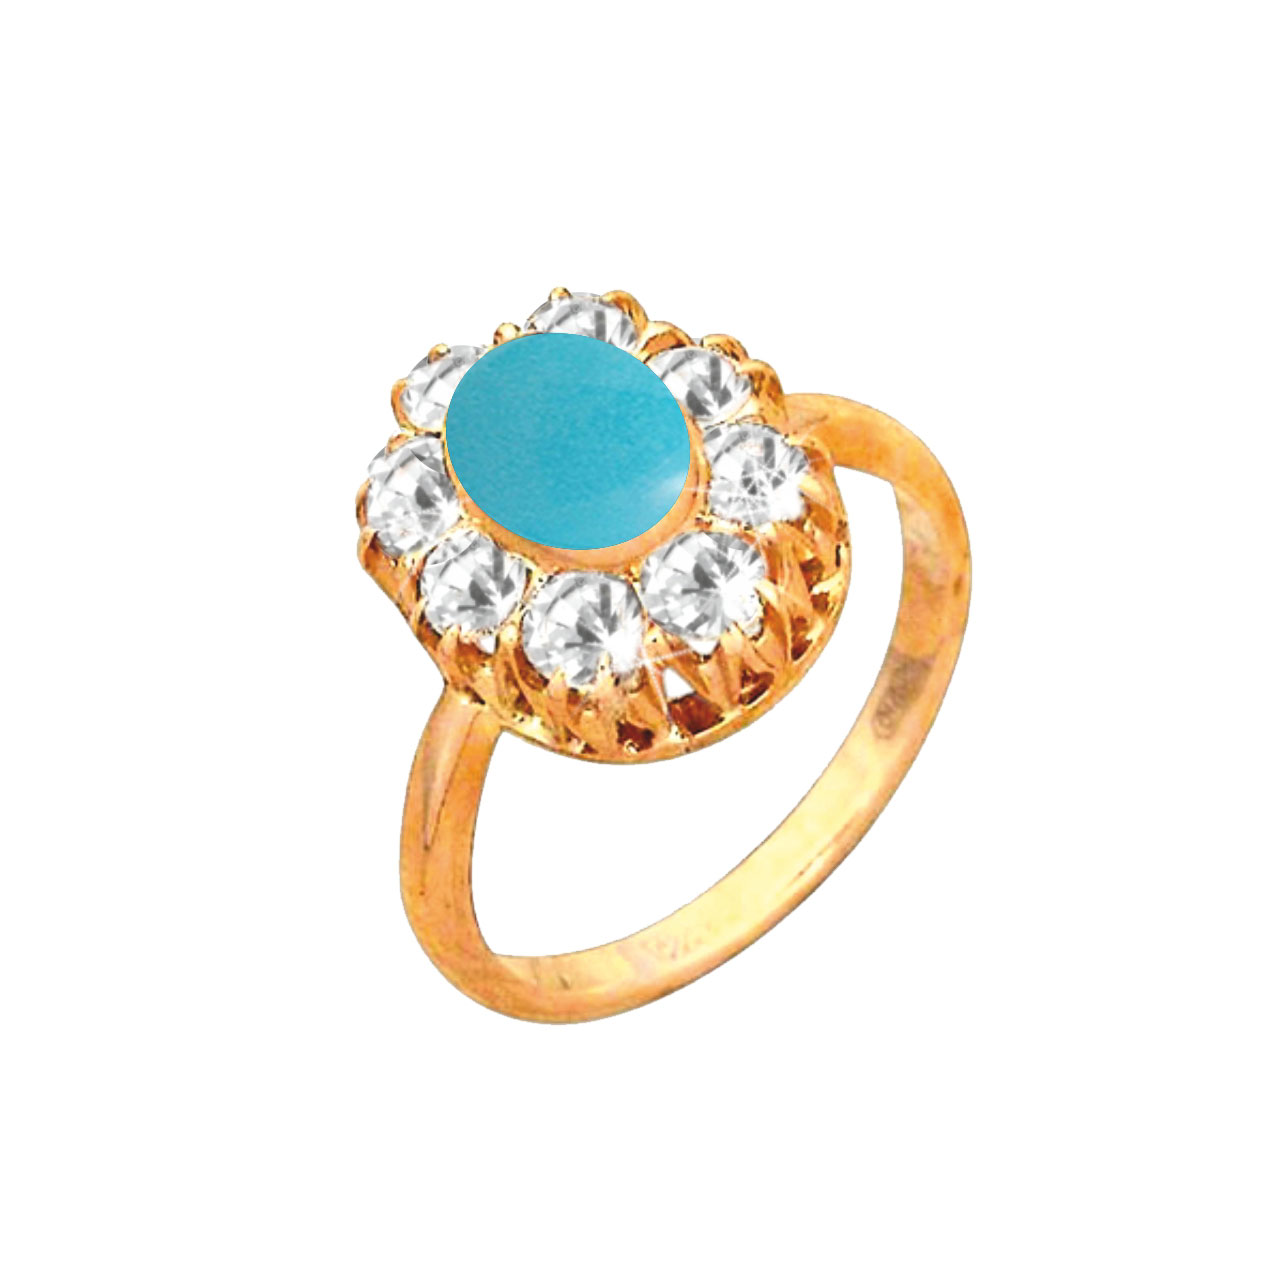 Russian gold halo ring 1